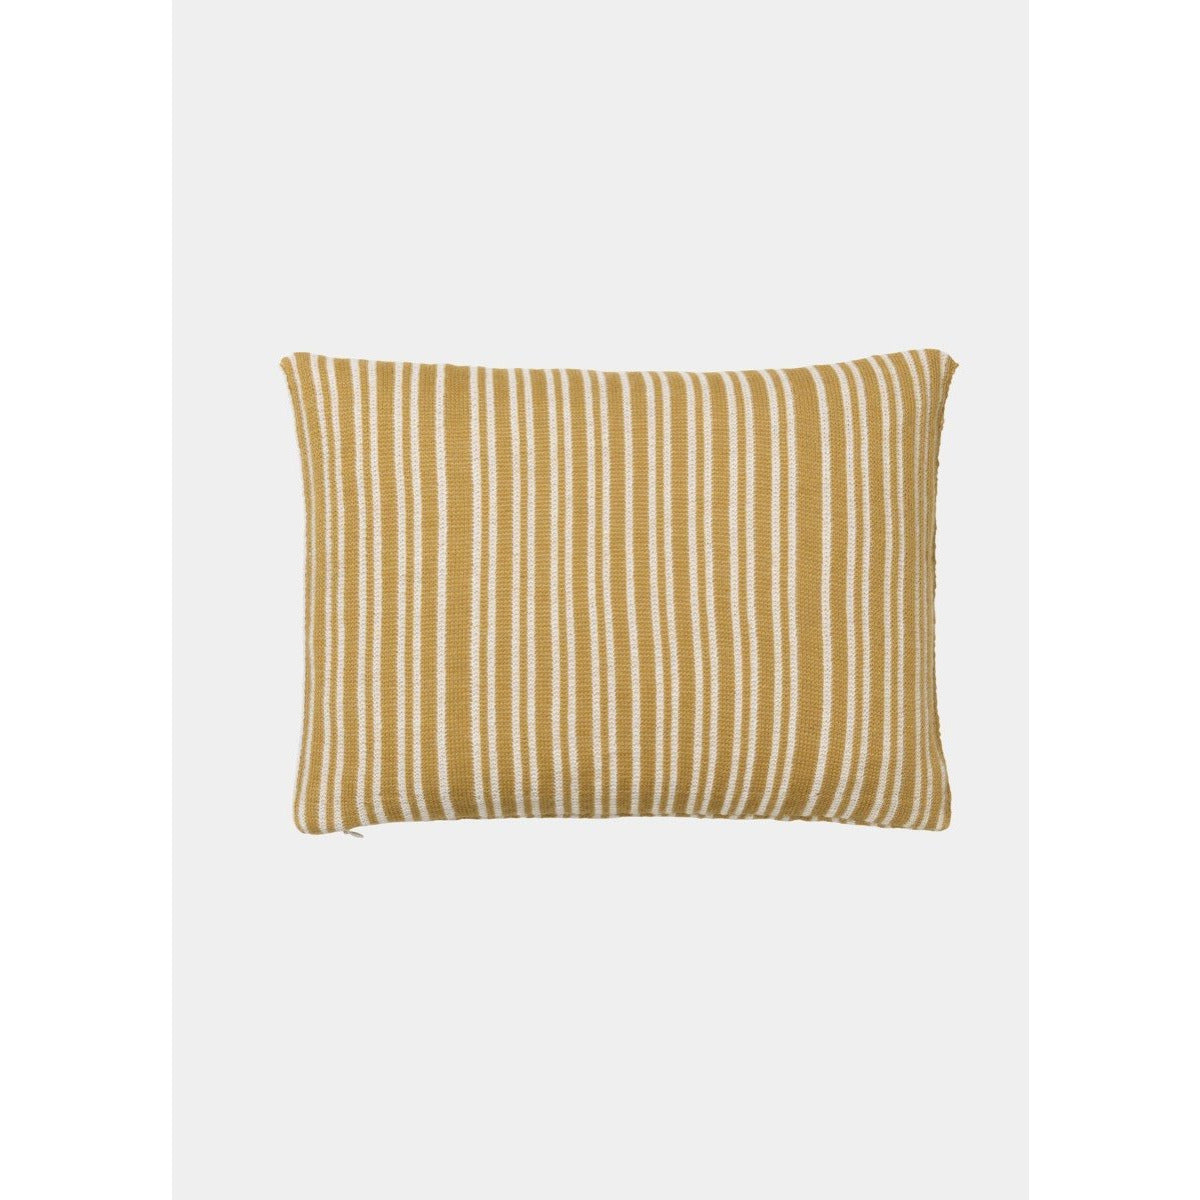 yellow and white striped pillow by designer aiayu